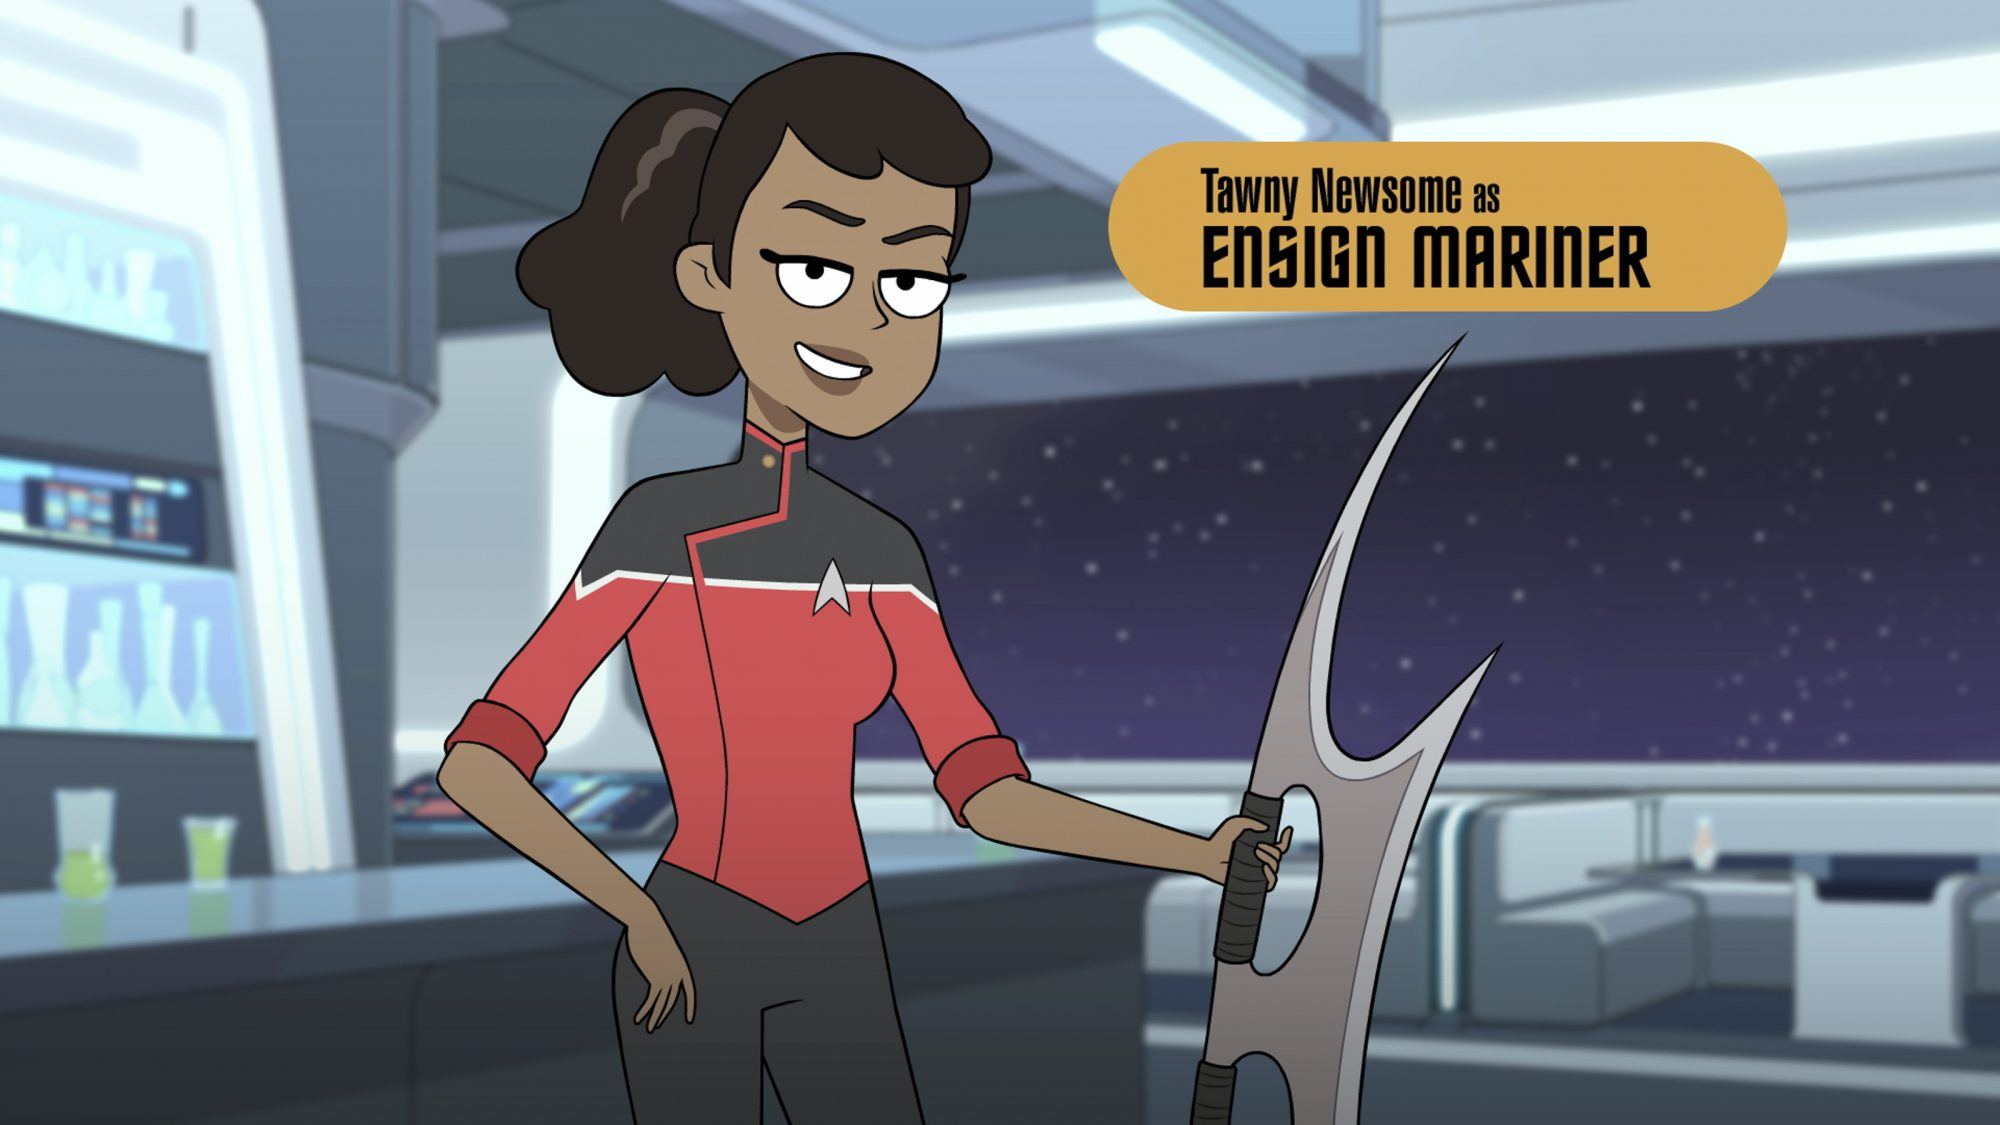 Pictured: Tawny Newsome as Ensign Mariner of the CBS All Access series STAR TREK: LOWER DECKS. ©2019 CBS Interactive, Inc. All Rights Reserved.